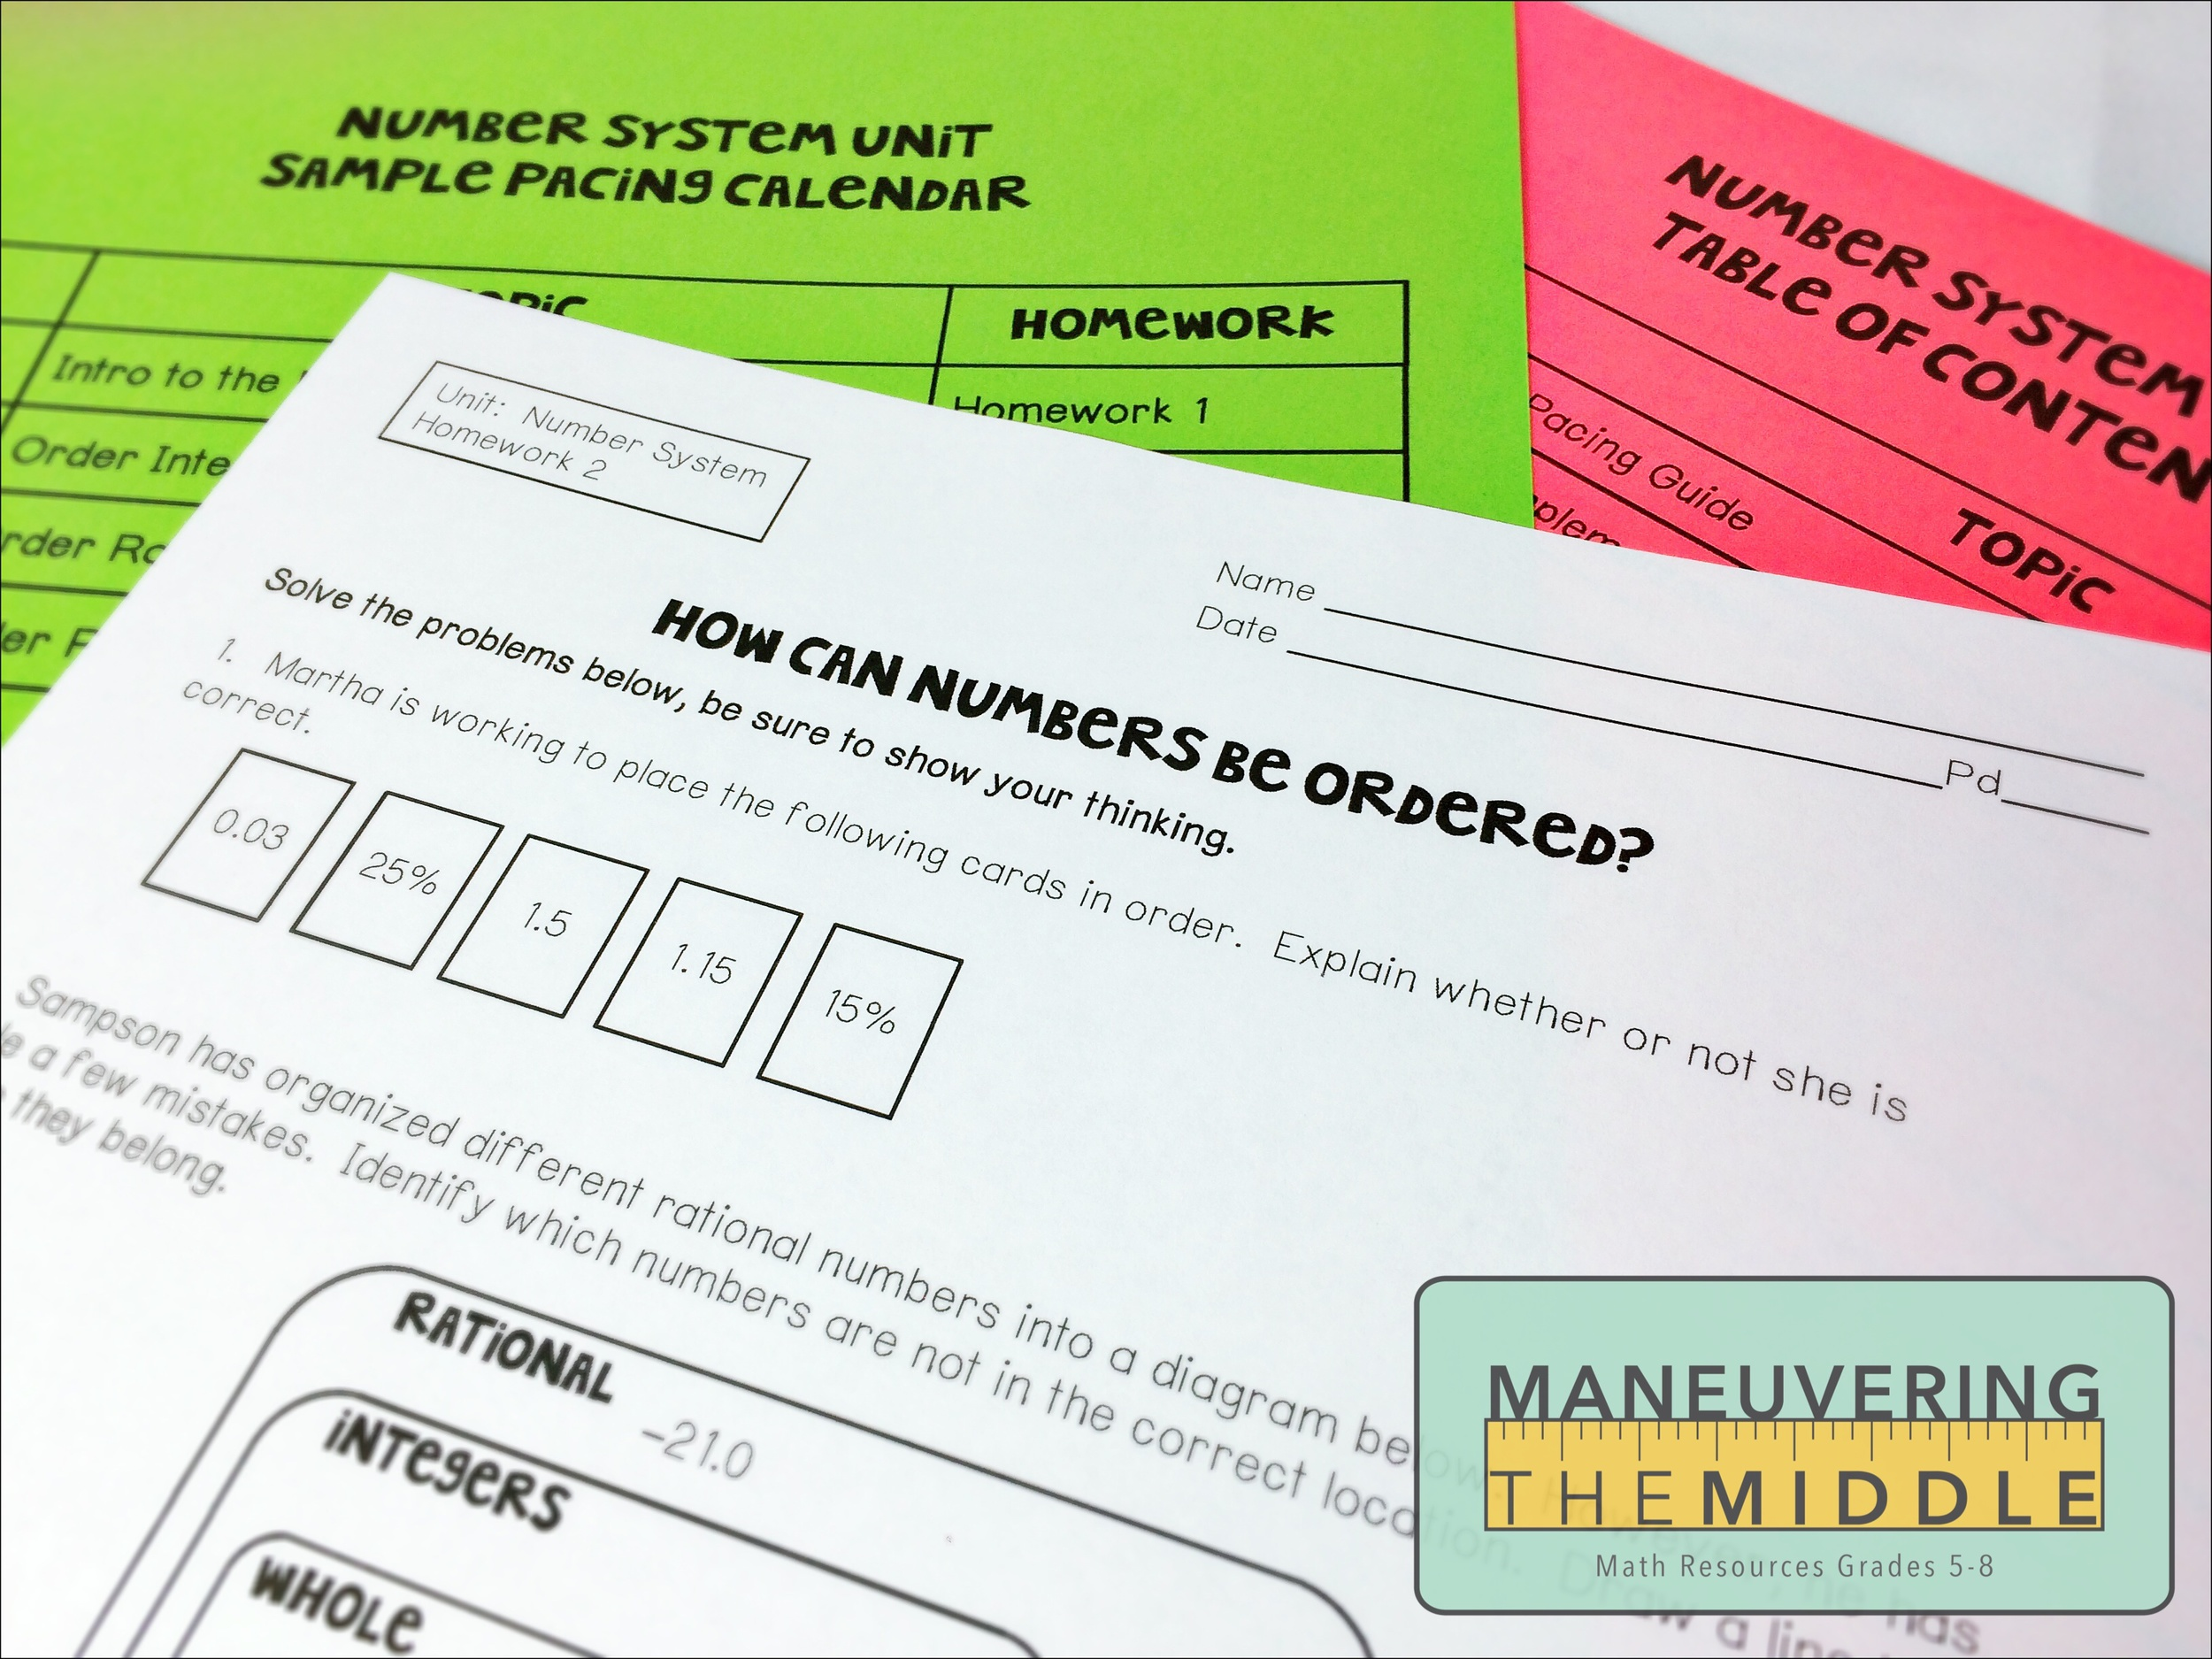 Resources for The Number System - Maneuvering the Middle